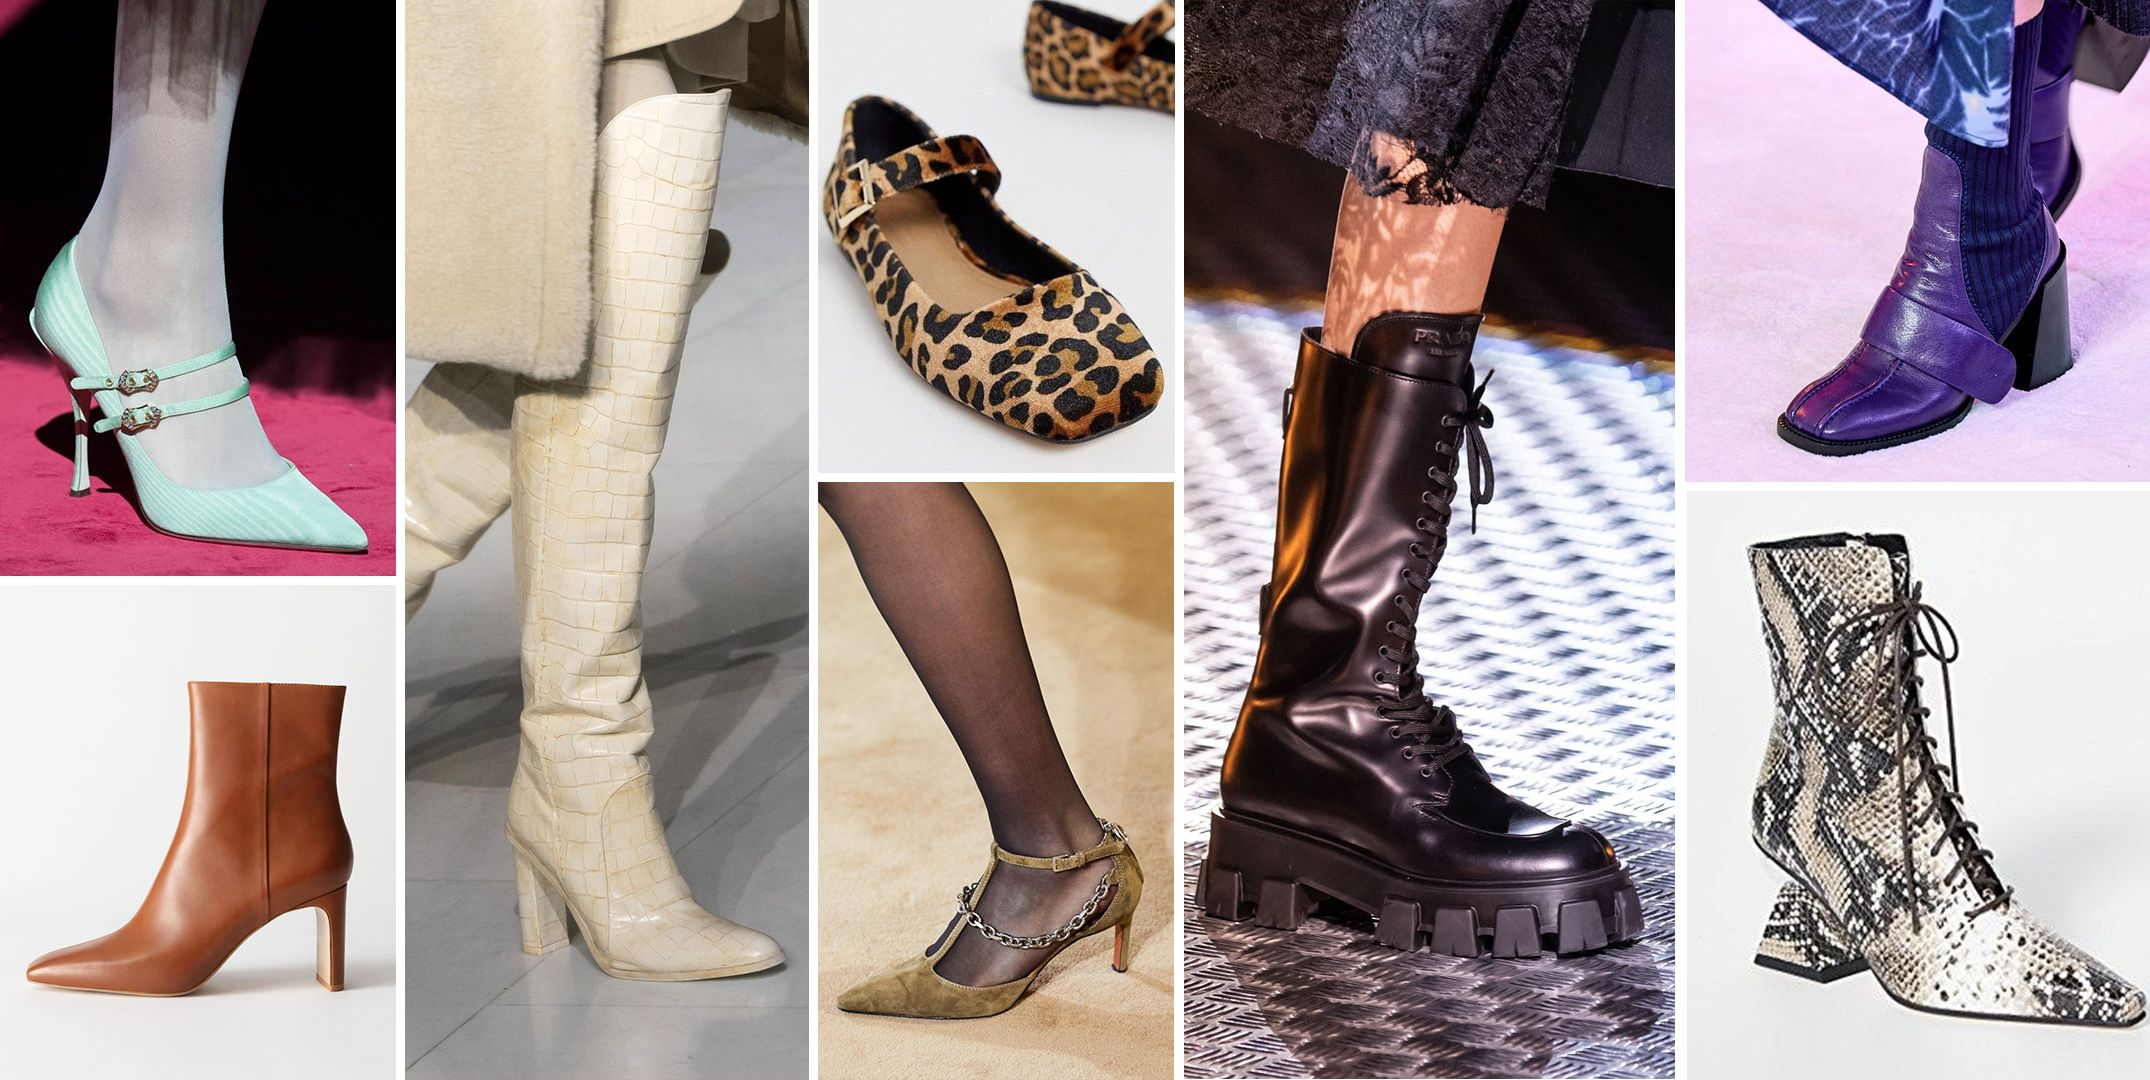 12 Cute Winter Shoe and Boot Trends for Winter 2019,2020